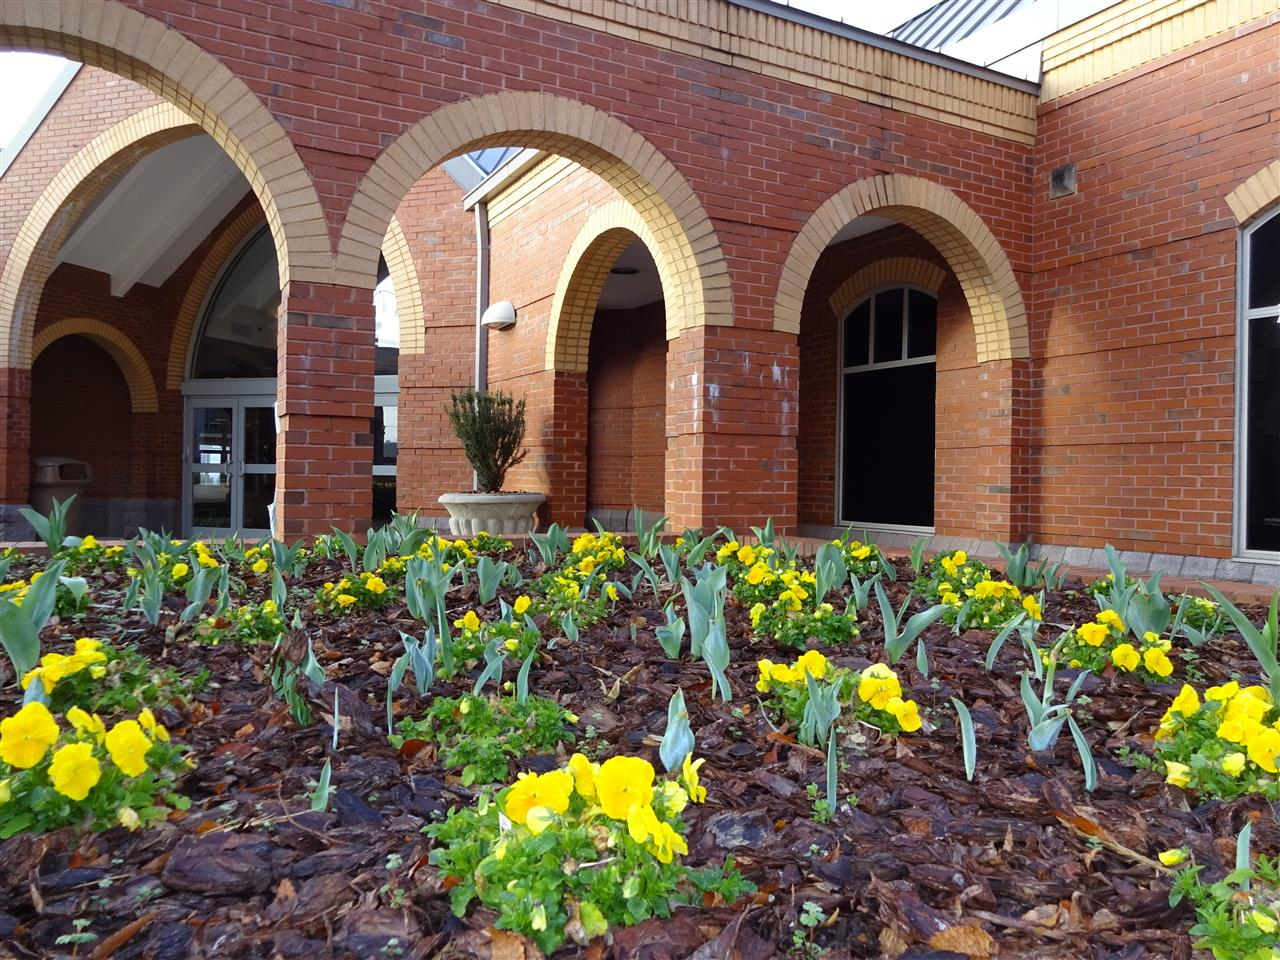 Springtime at the Civic Center in downtown Statesville, NC #civiccenter #statesville #nc #downtownstatesville